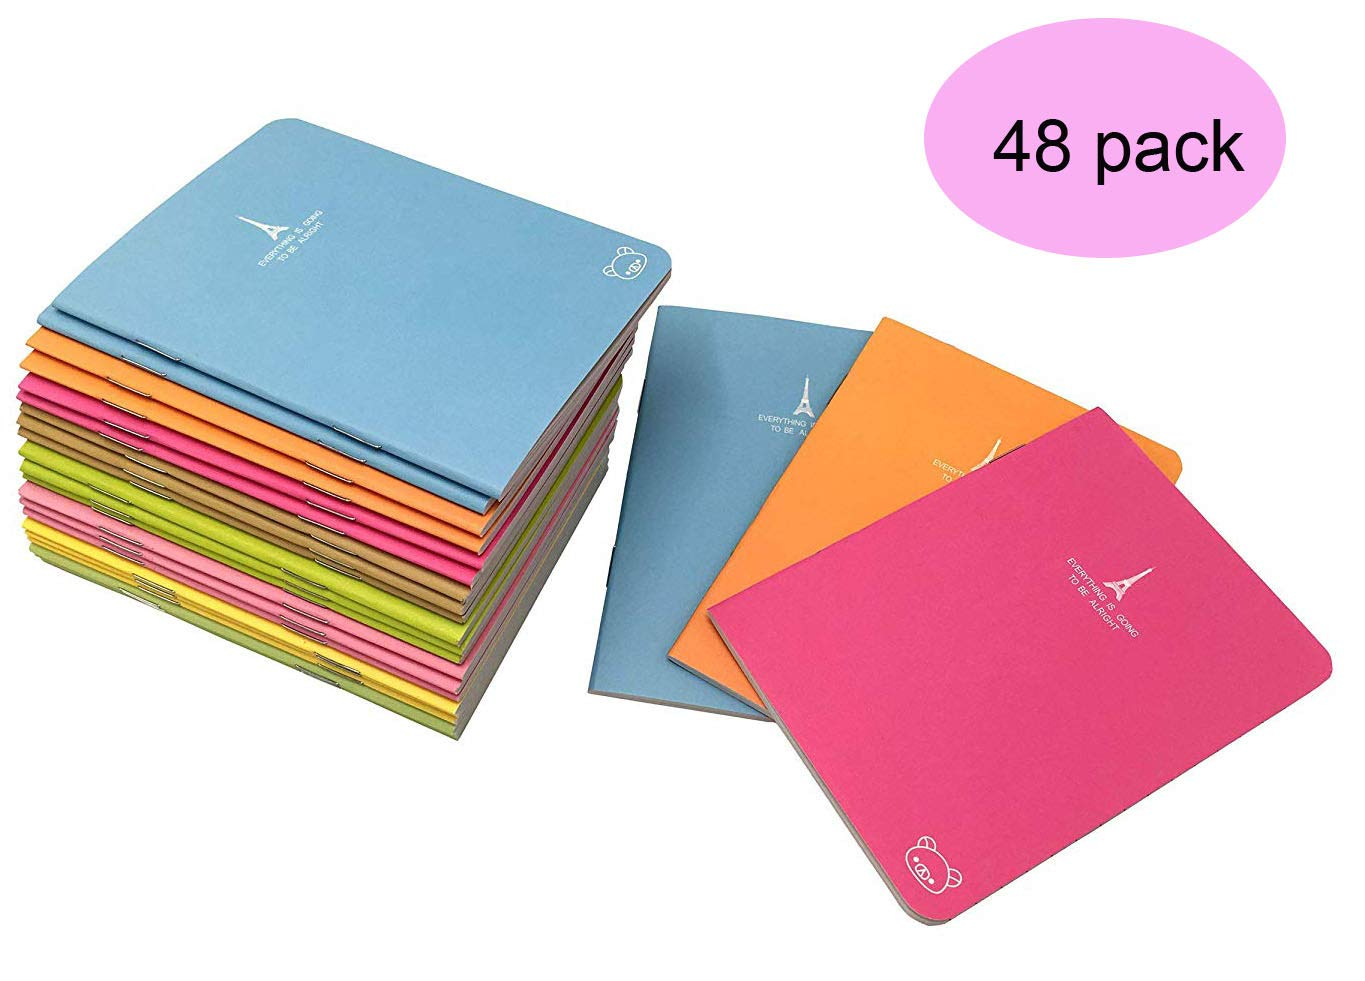 Pack of 48 Pocket Notebook Set (3.5'' x5 '') Candy Colors Portable Pocket Pal Super Mini Journals Portable Steno Note Books Mini Notepads(48pcs)